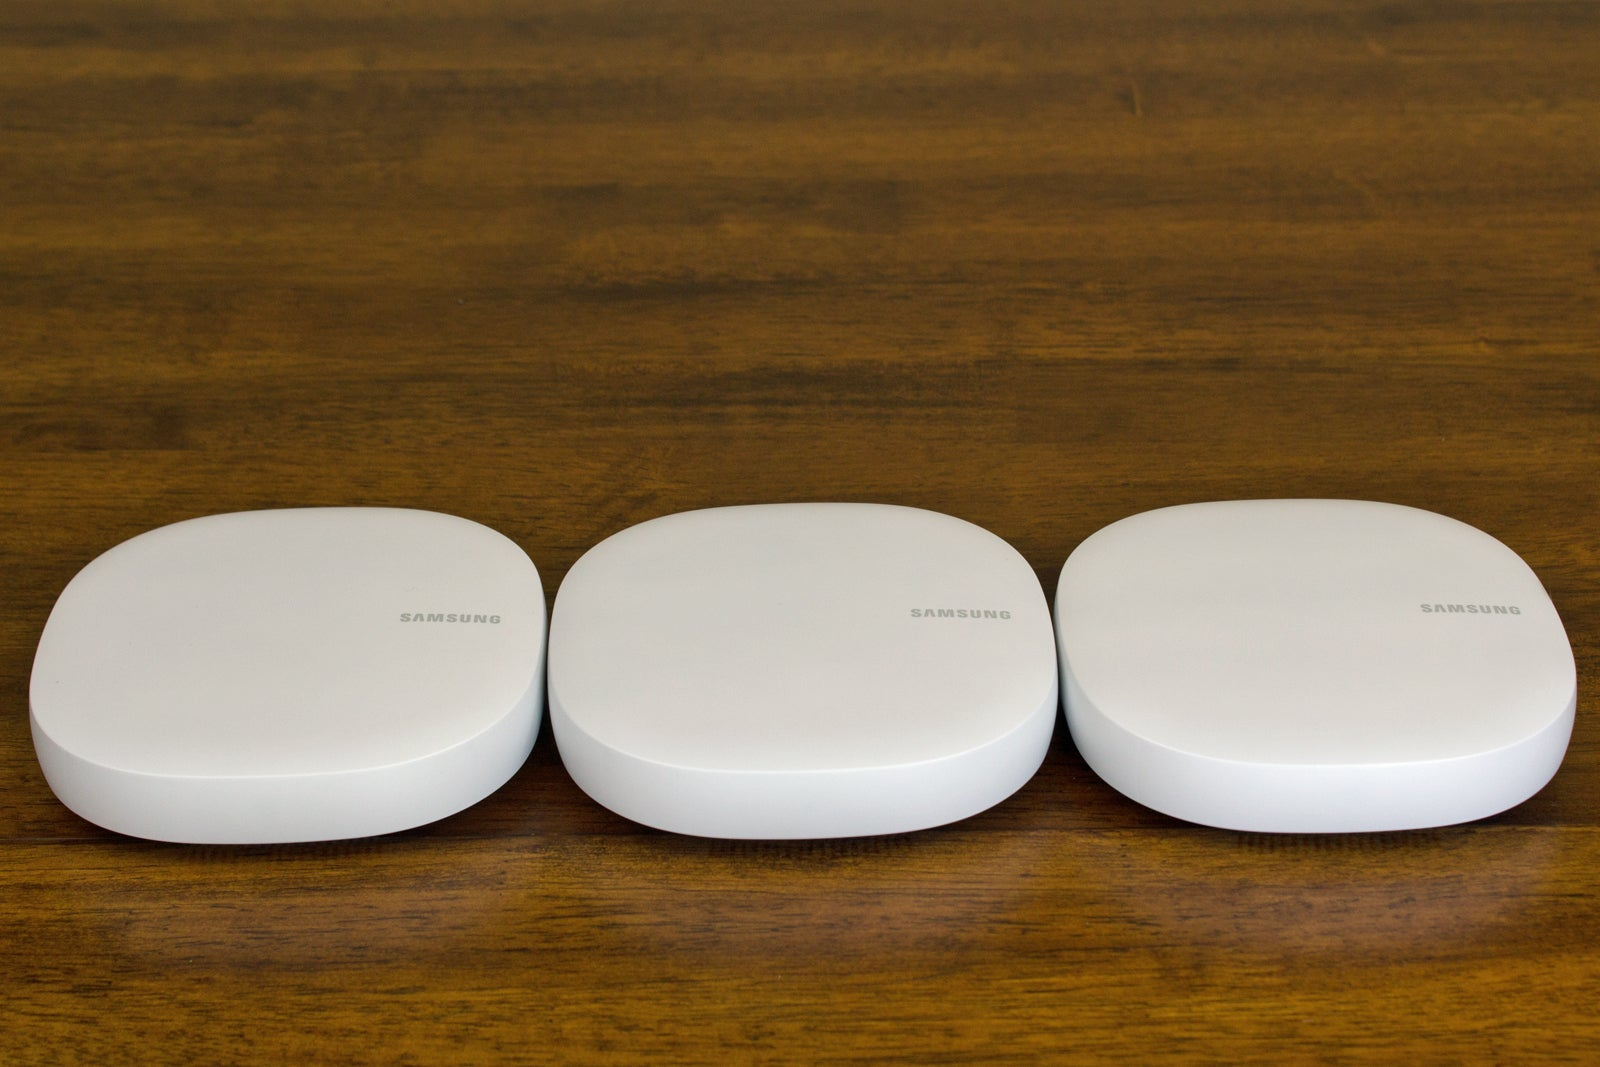 Samsung Connect Home This Router Smart Hub Combo Isnt A Star Structured Wiring Homepro S At Glance In Either Role Pcworld